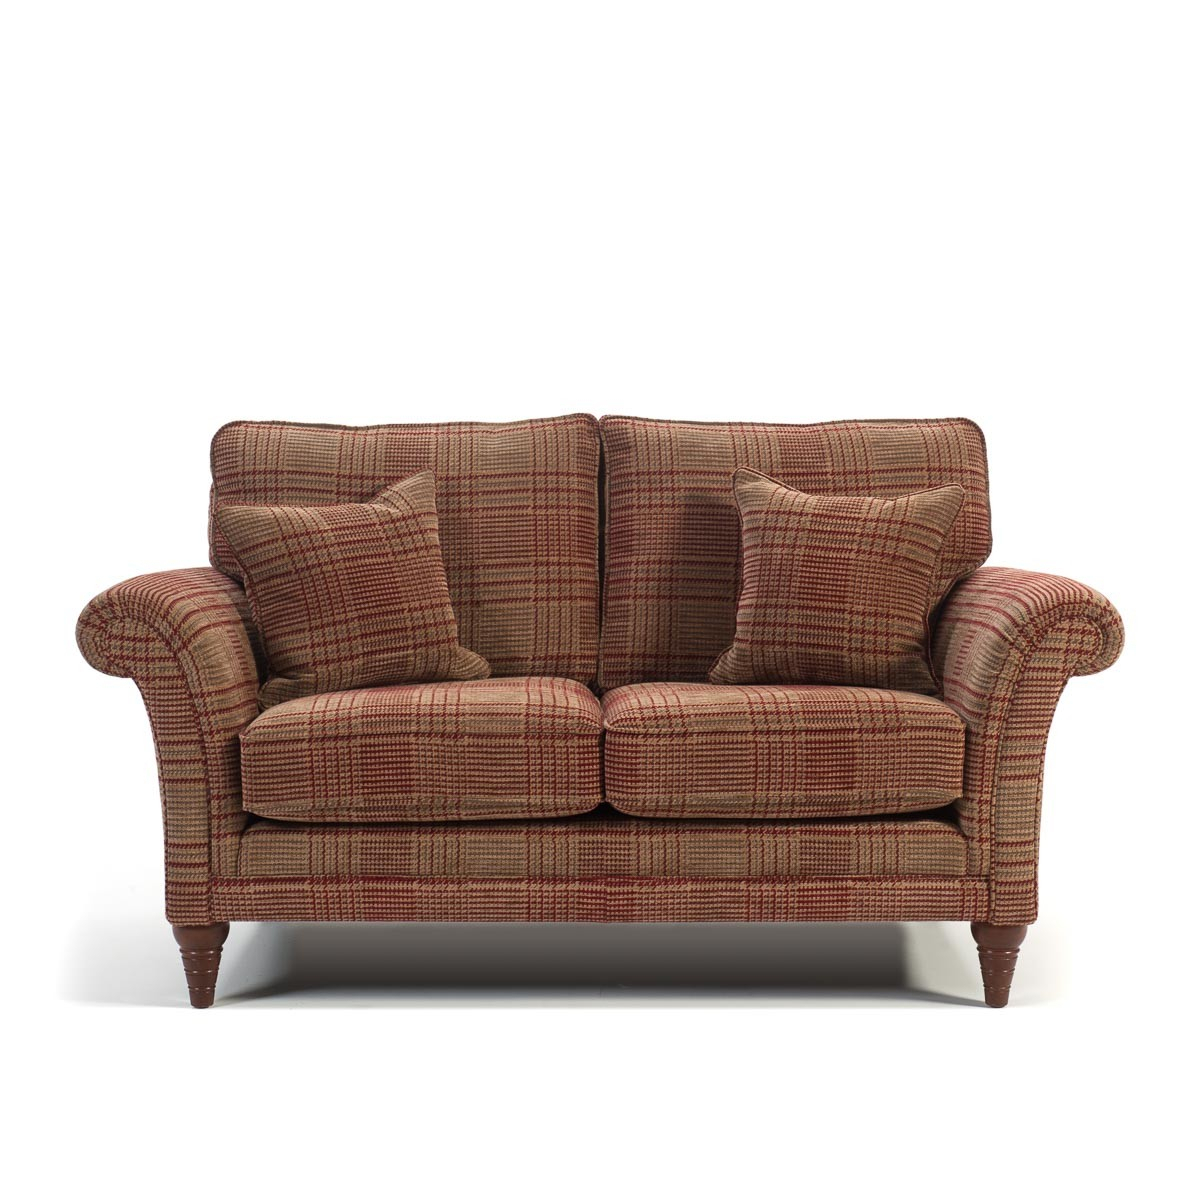 Parker Knoll Burghley 2 Seater Sofa | 2 Seaters | Sofas | Caseys Throughout Parker Sofa Chairs (Image 11 of 25)